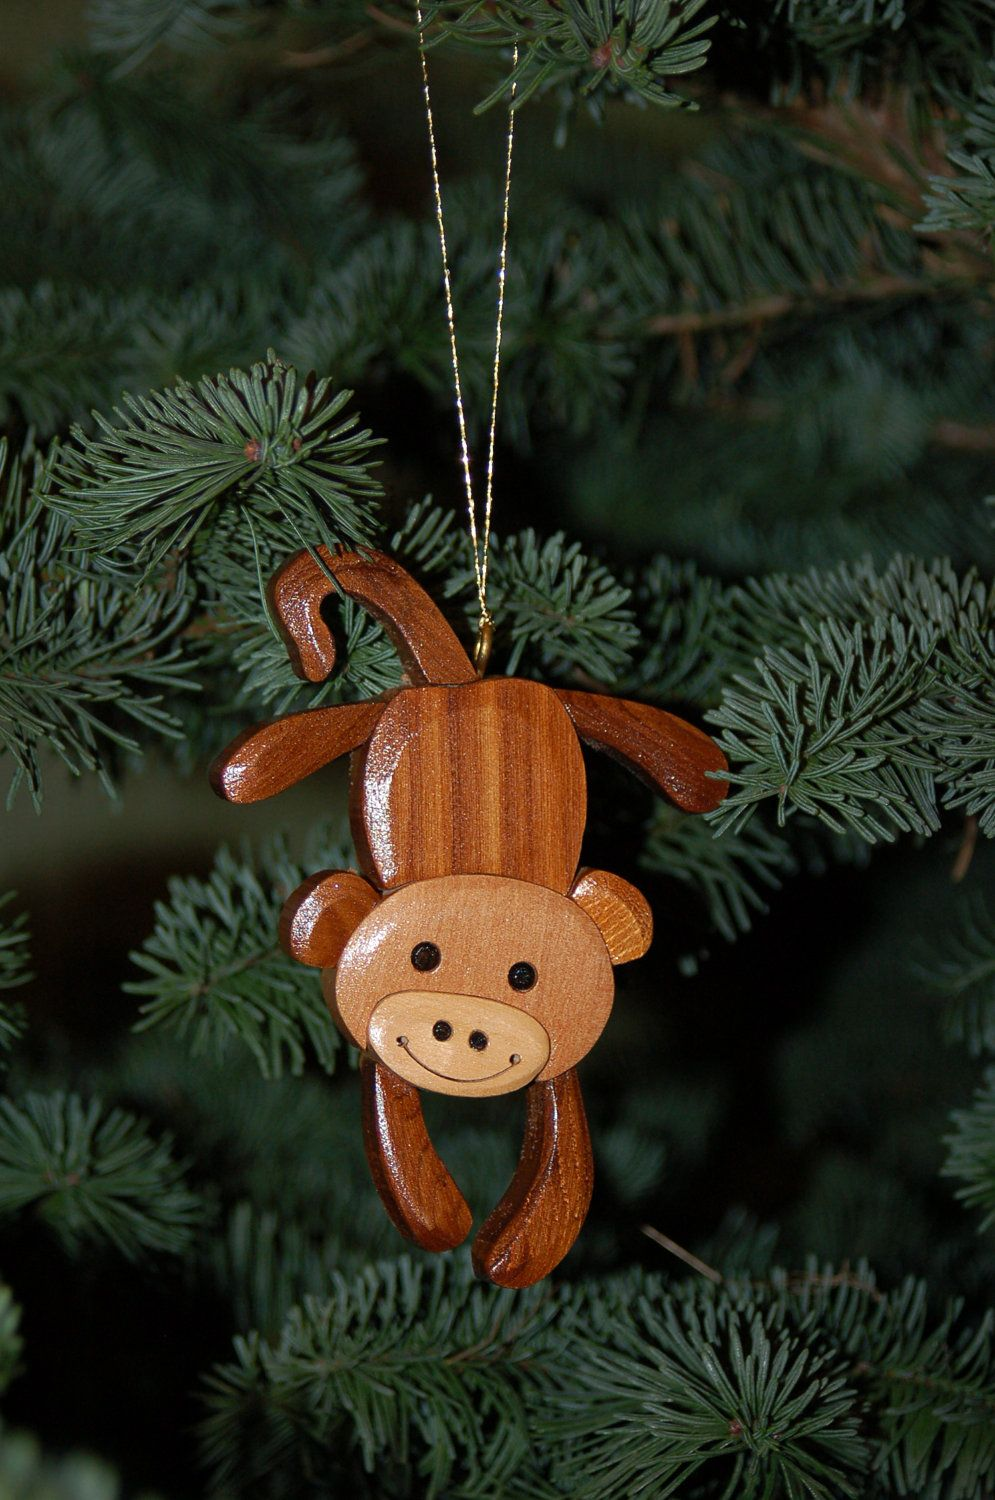 Wood Carving Christmas Ornament Patterns